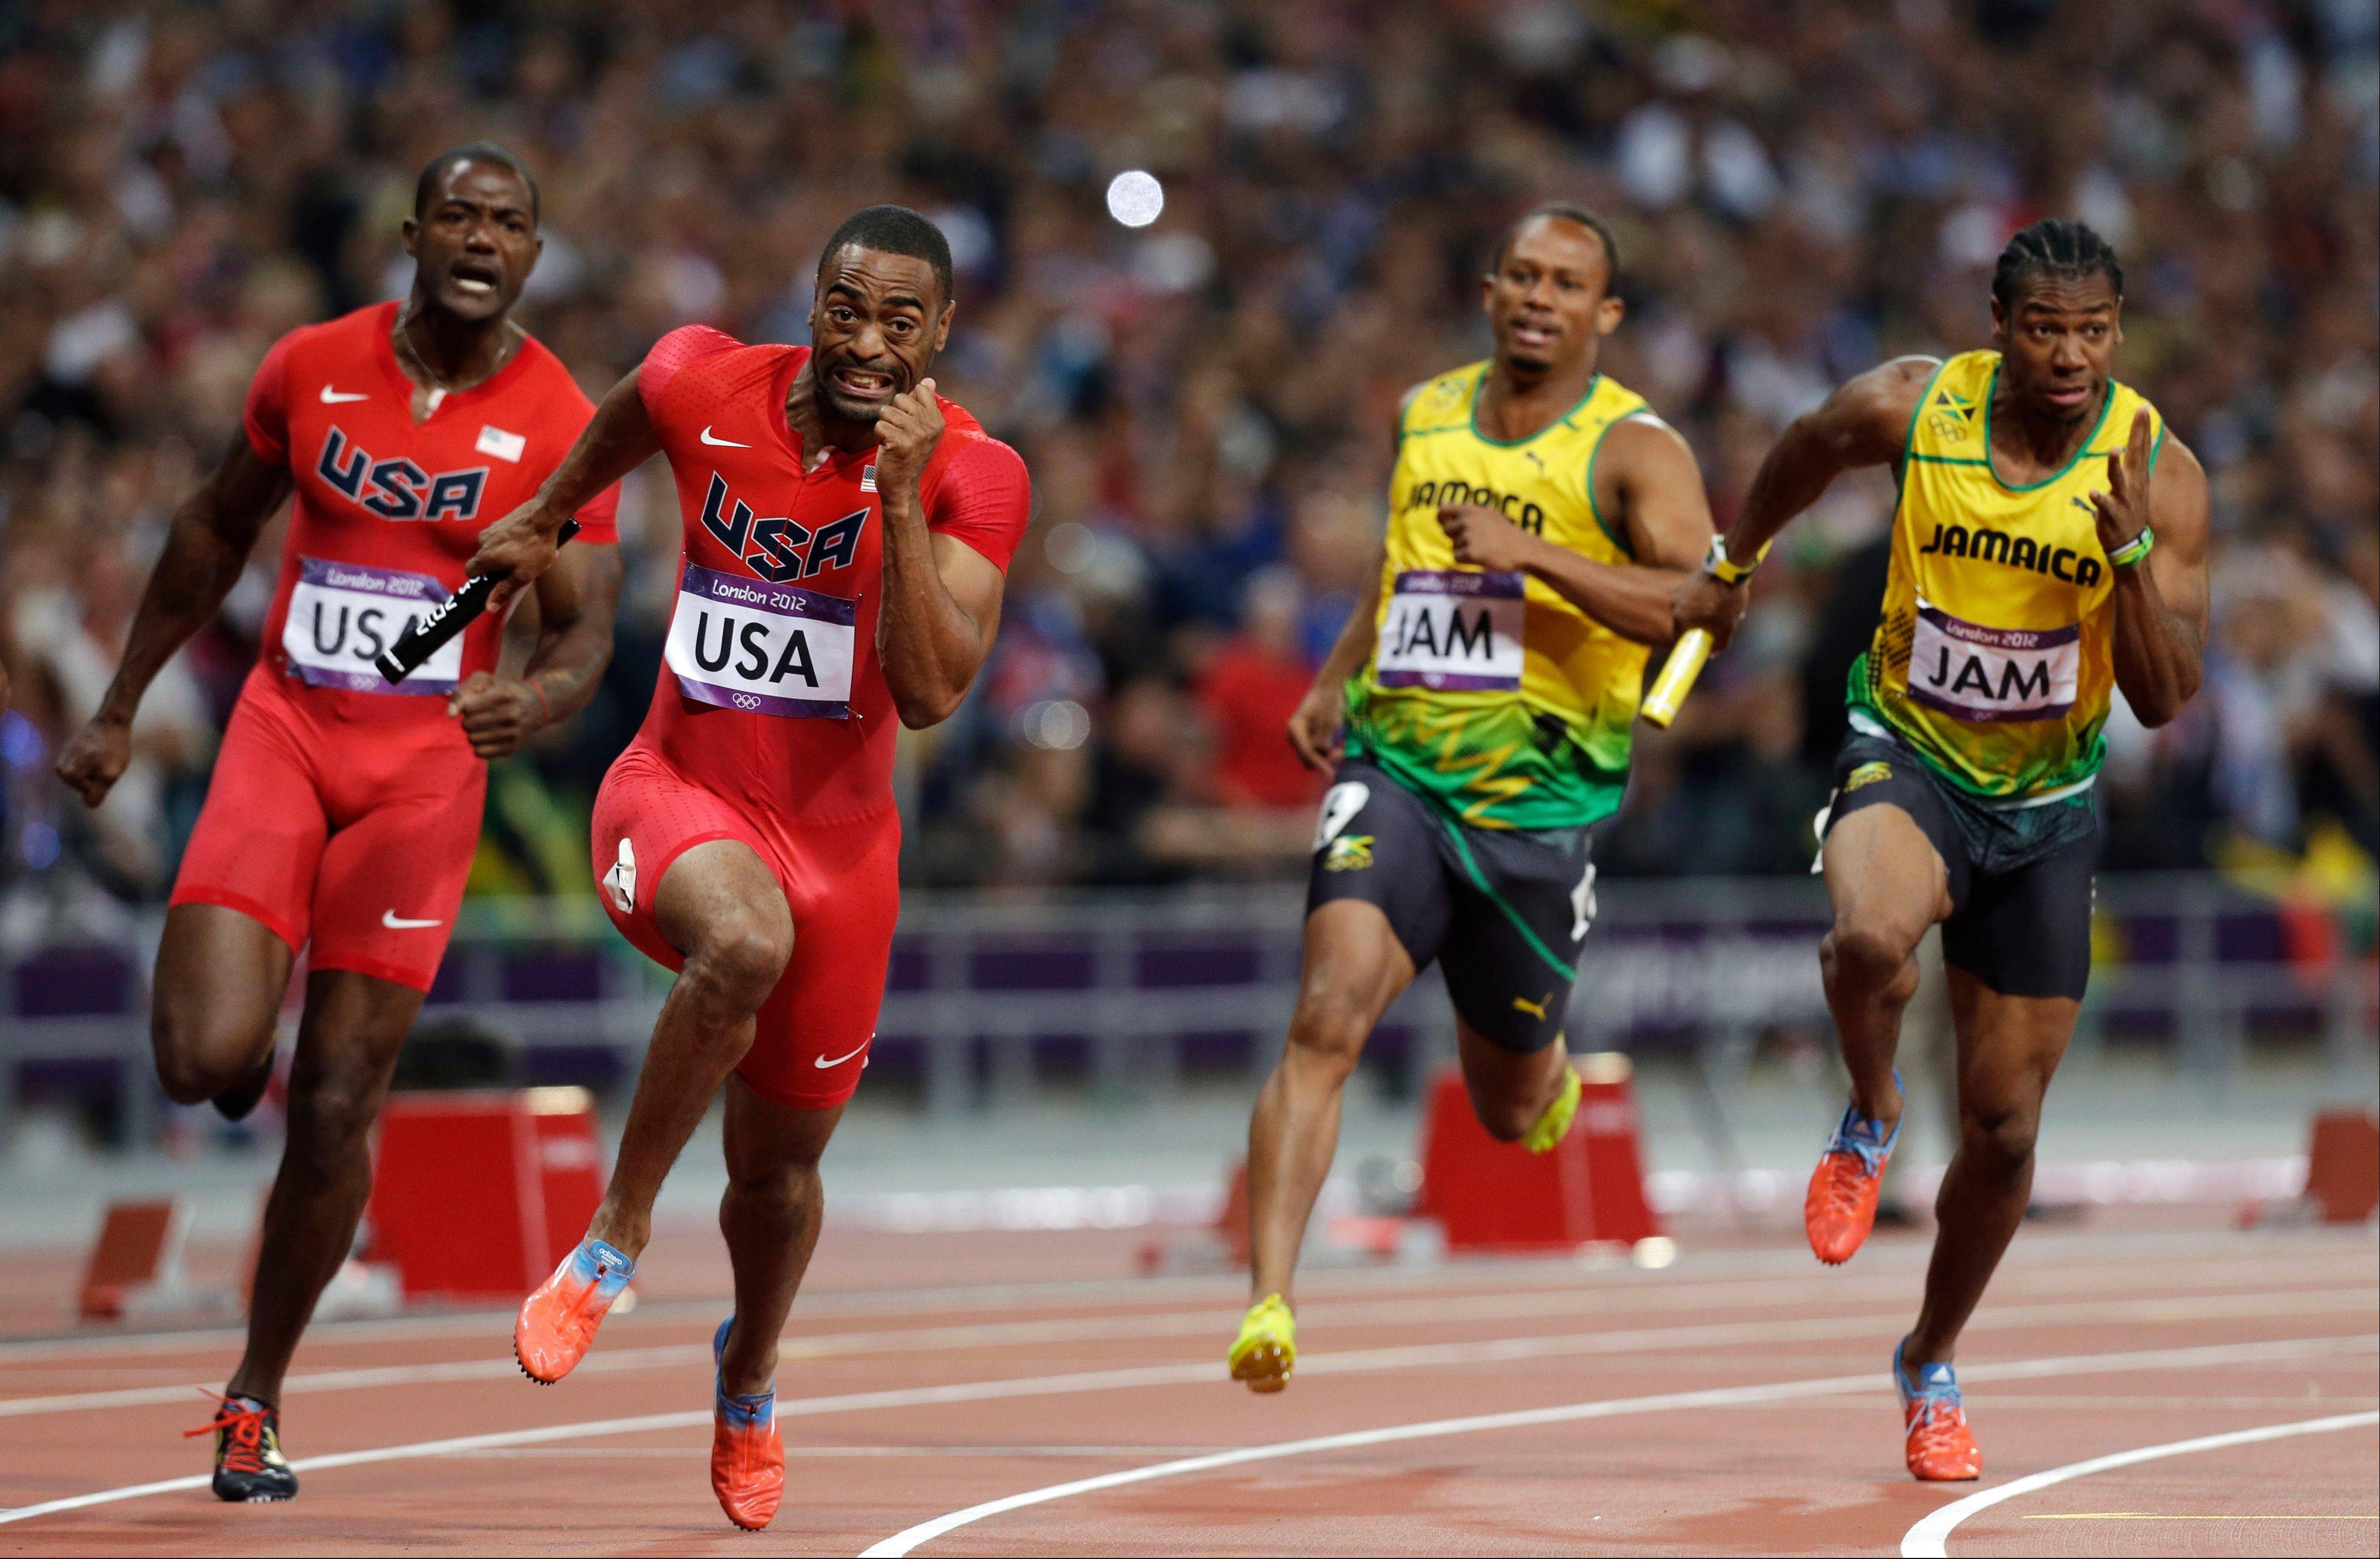 From left, United States' Justin Gatlin hands the baton to Tyson Gay, as Jamaica's Michael Frater hands the baton to Yohan Blake in the men's 4x100-meter relay final during the athletics in the Olympic Stadium at the 2012 Summer Olympics, London, Saturday, Aug. 11, 2012.